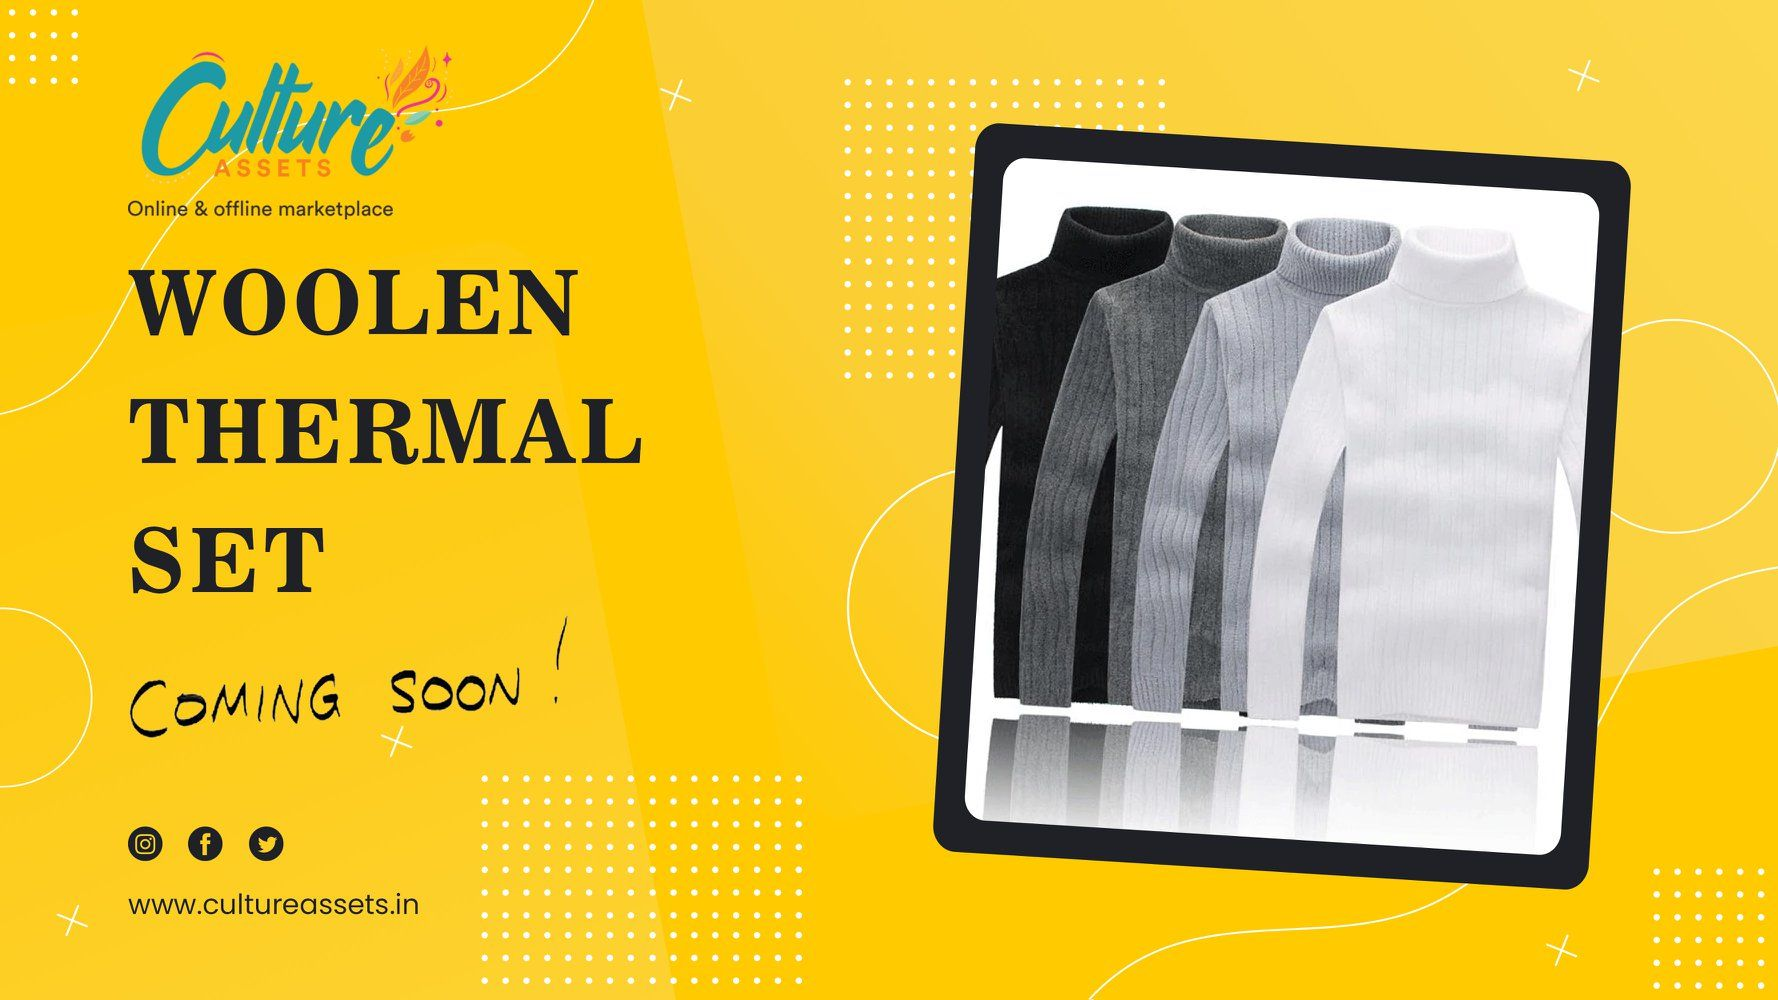 Shop from a wide range of Woolen Thermal online on Culture Assets. . . . . #woolen #wool #handmade #menstylesuit #woolendress #knitting #sweater #woolensweater #woolenscarf #woolensocks #woolenblanket #cashmere #woolencap #crochet #woolencoat #knitted #love #handcrafted #outfits #woolenjacket #woolenhat #indianwear #shirt #winterfashion #fashionsuits #woolenclothes #wedding #grooming #handtailored